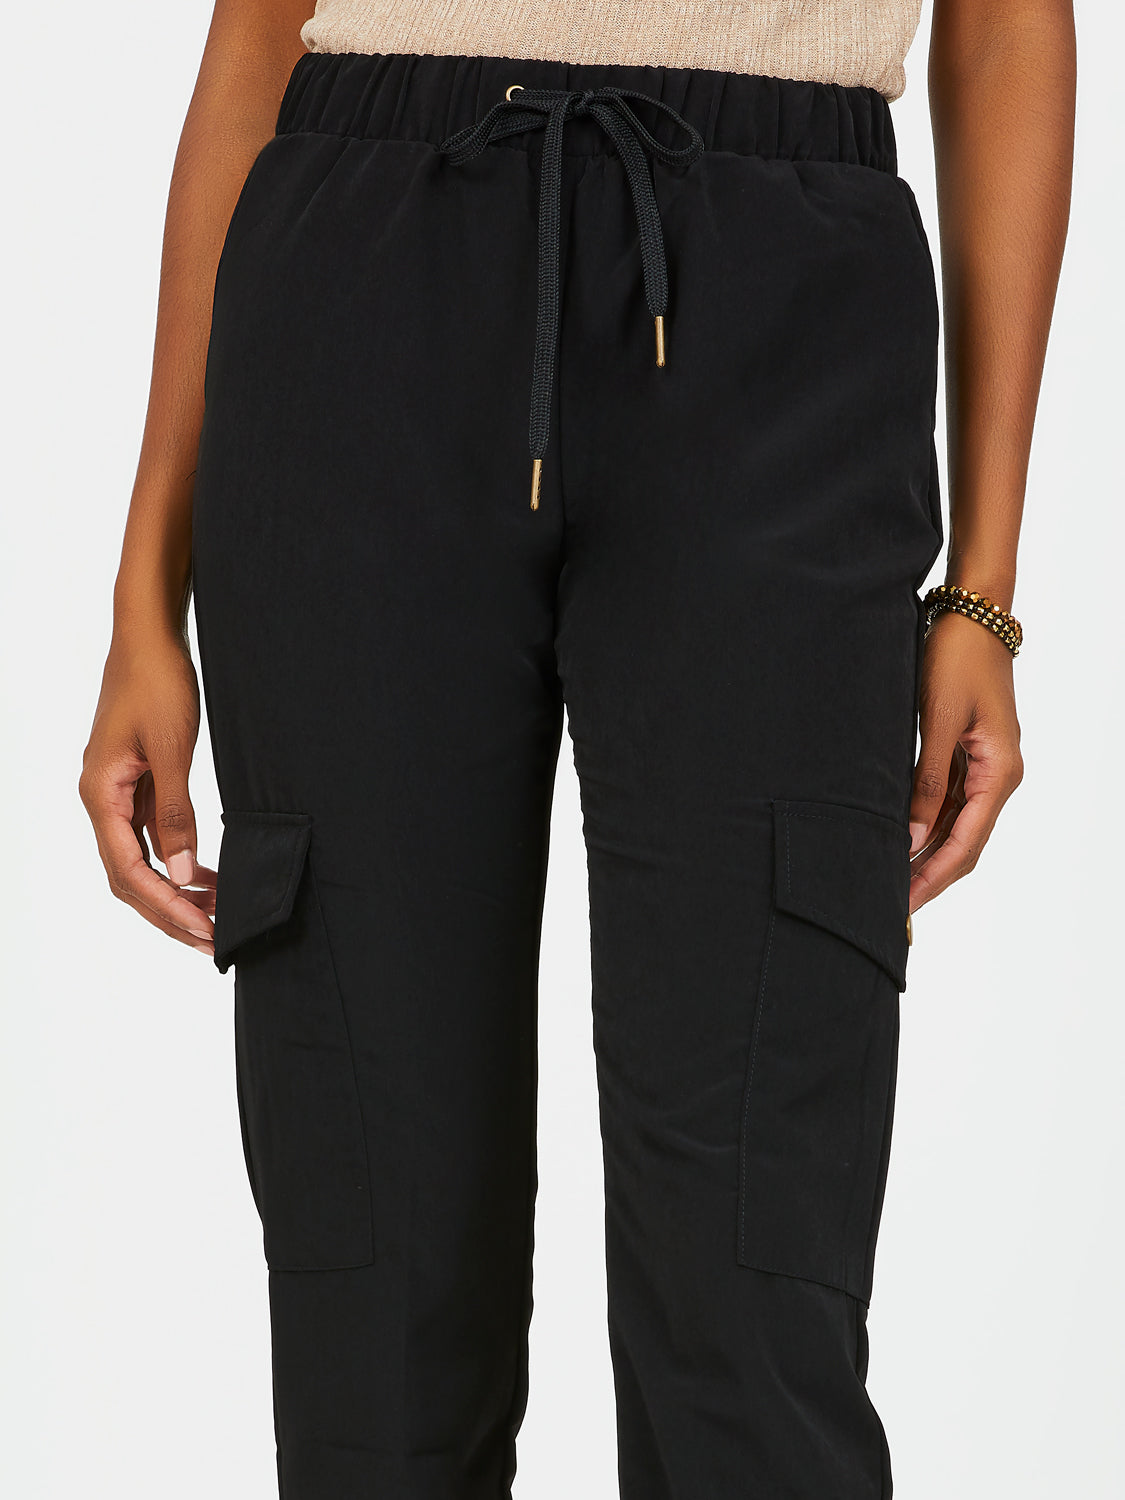 Pull-On Drawstring Joggers